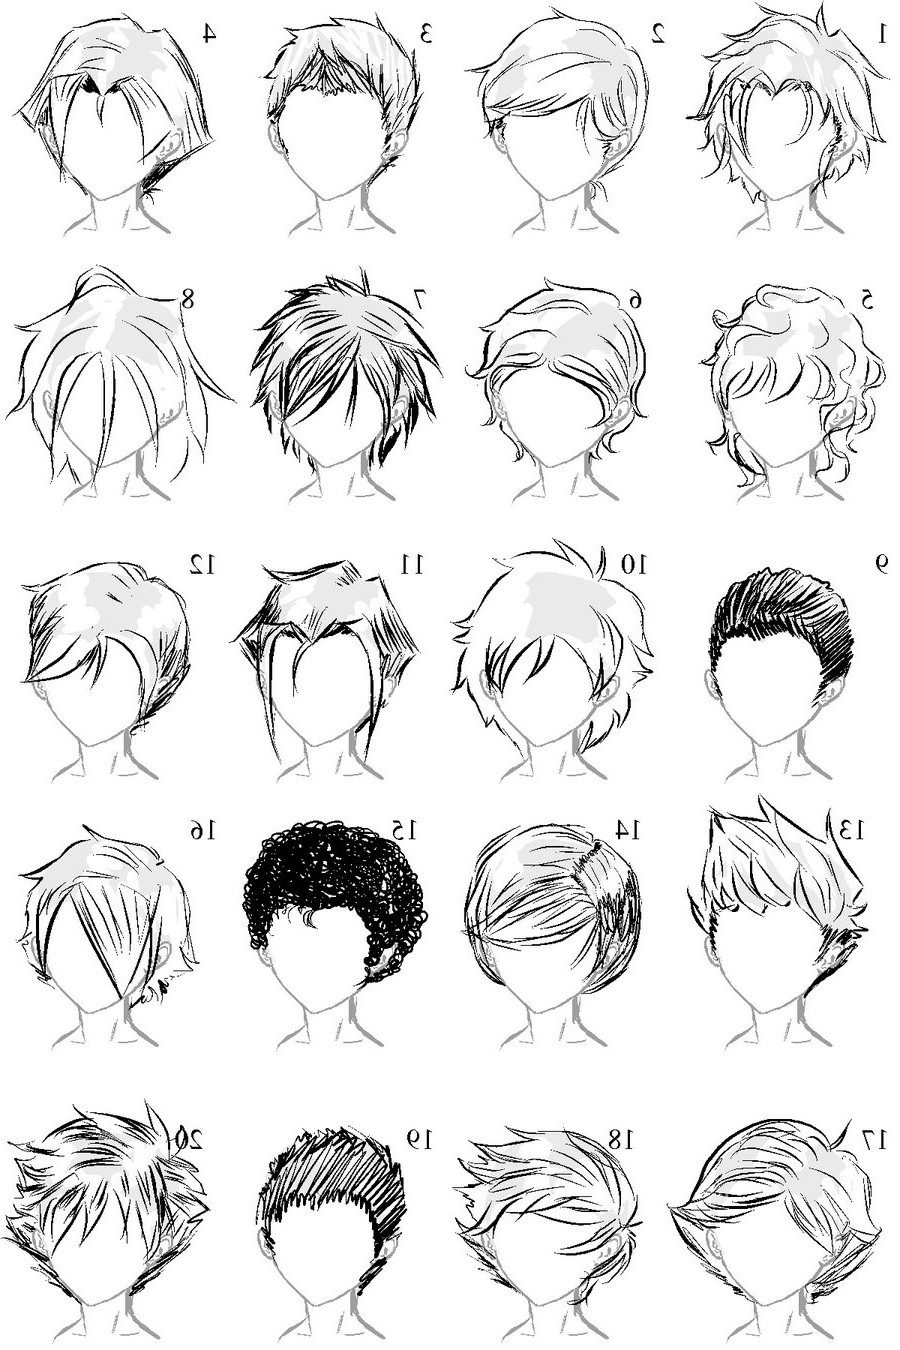 Boy Hairstyles Anime  Male Anime Hairstyles Drawing at PaintingValley